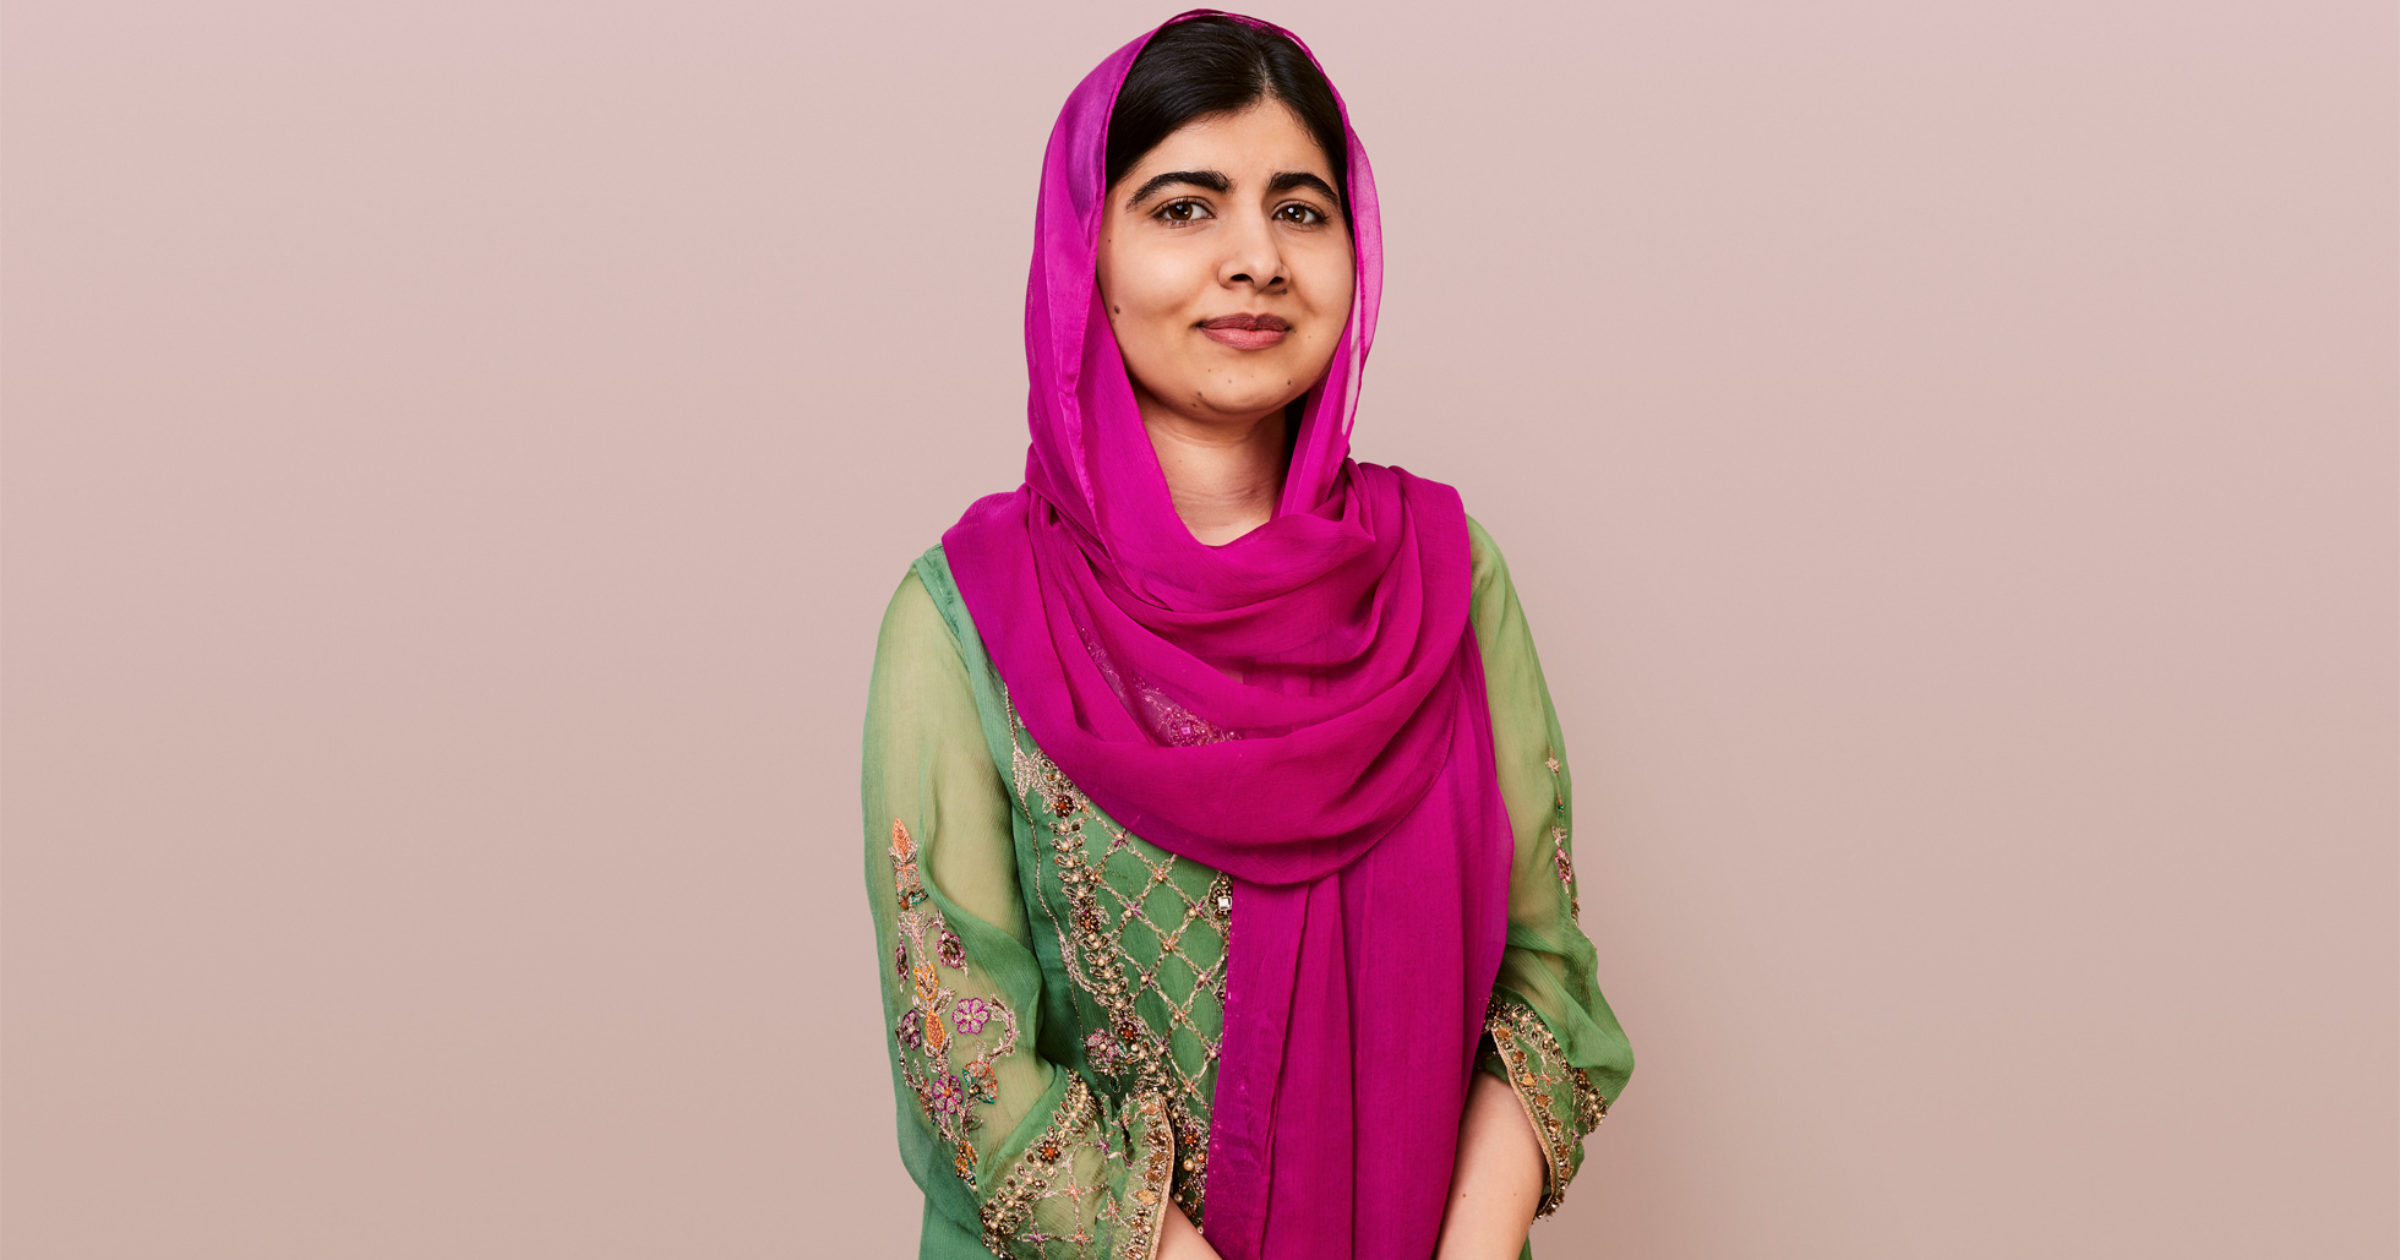 Malala Yousafzai is producing content for Apple TV+